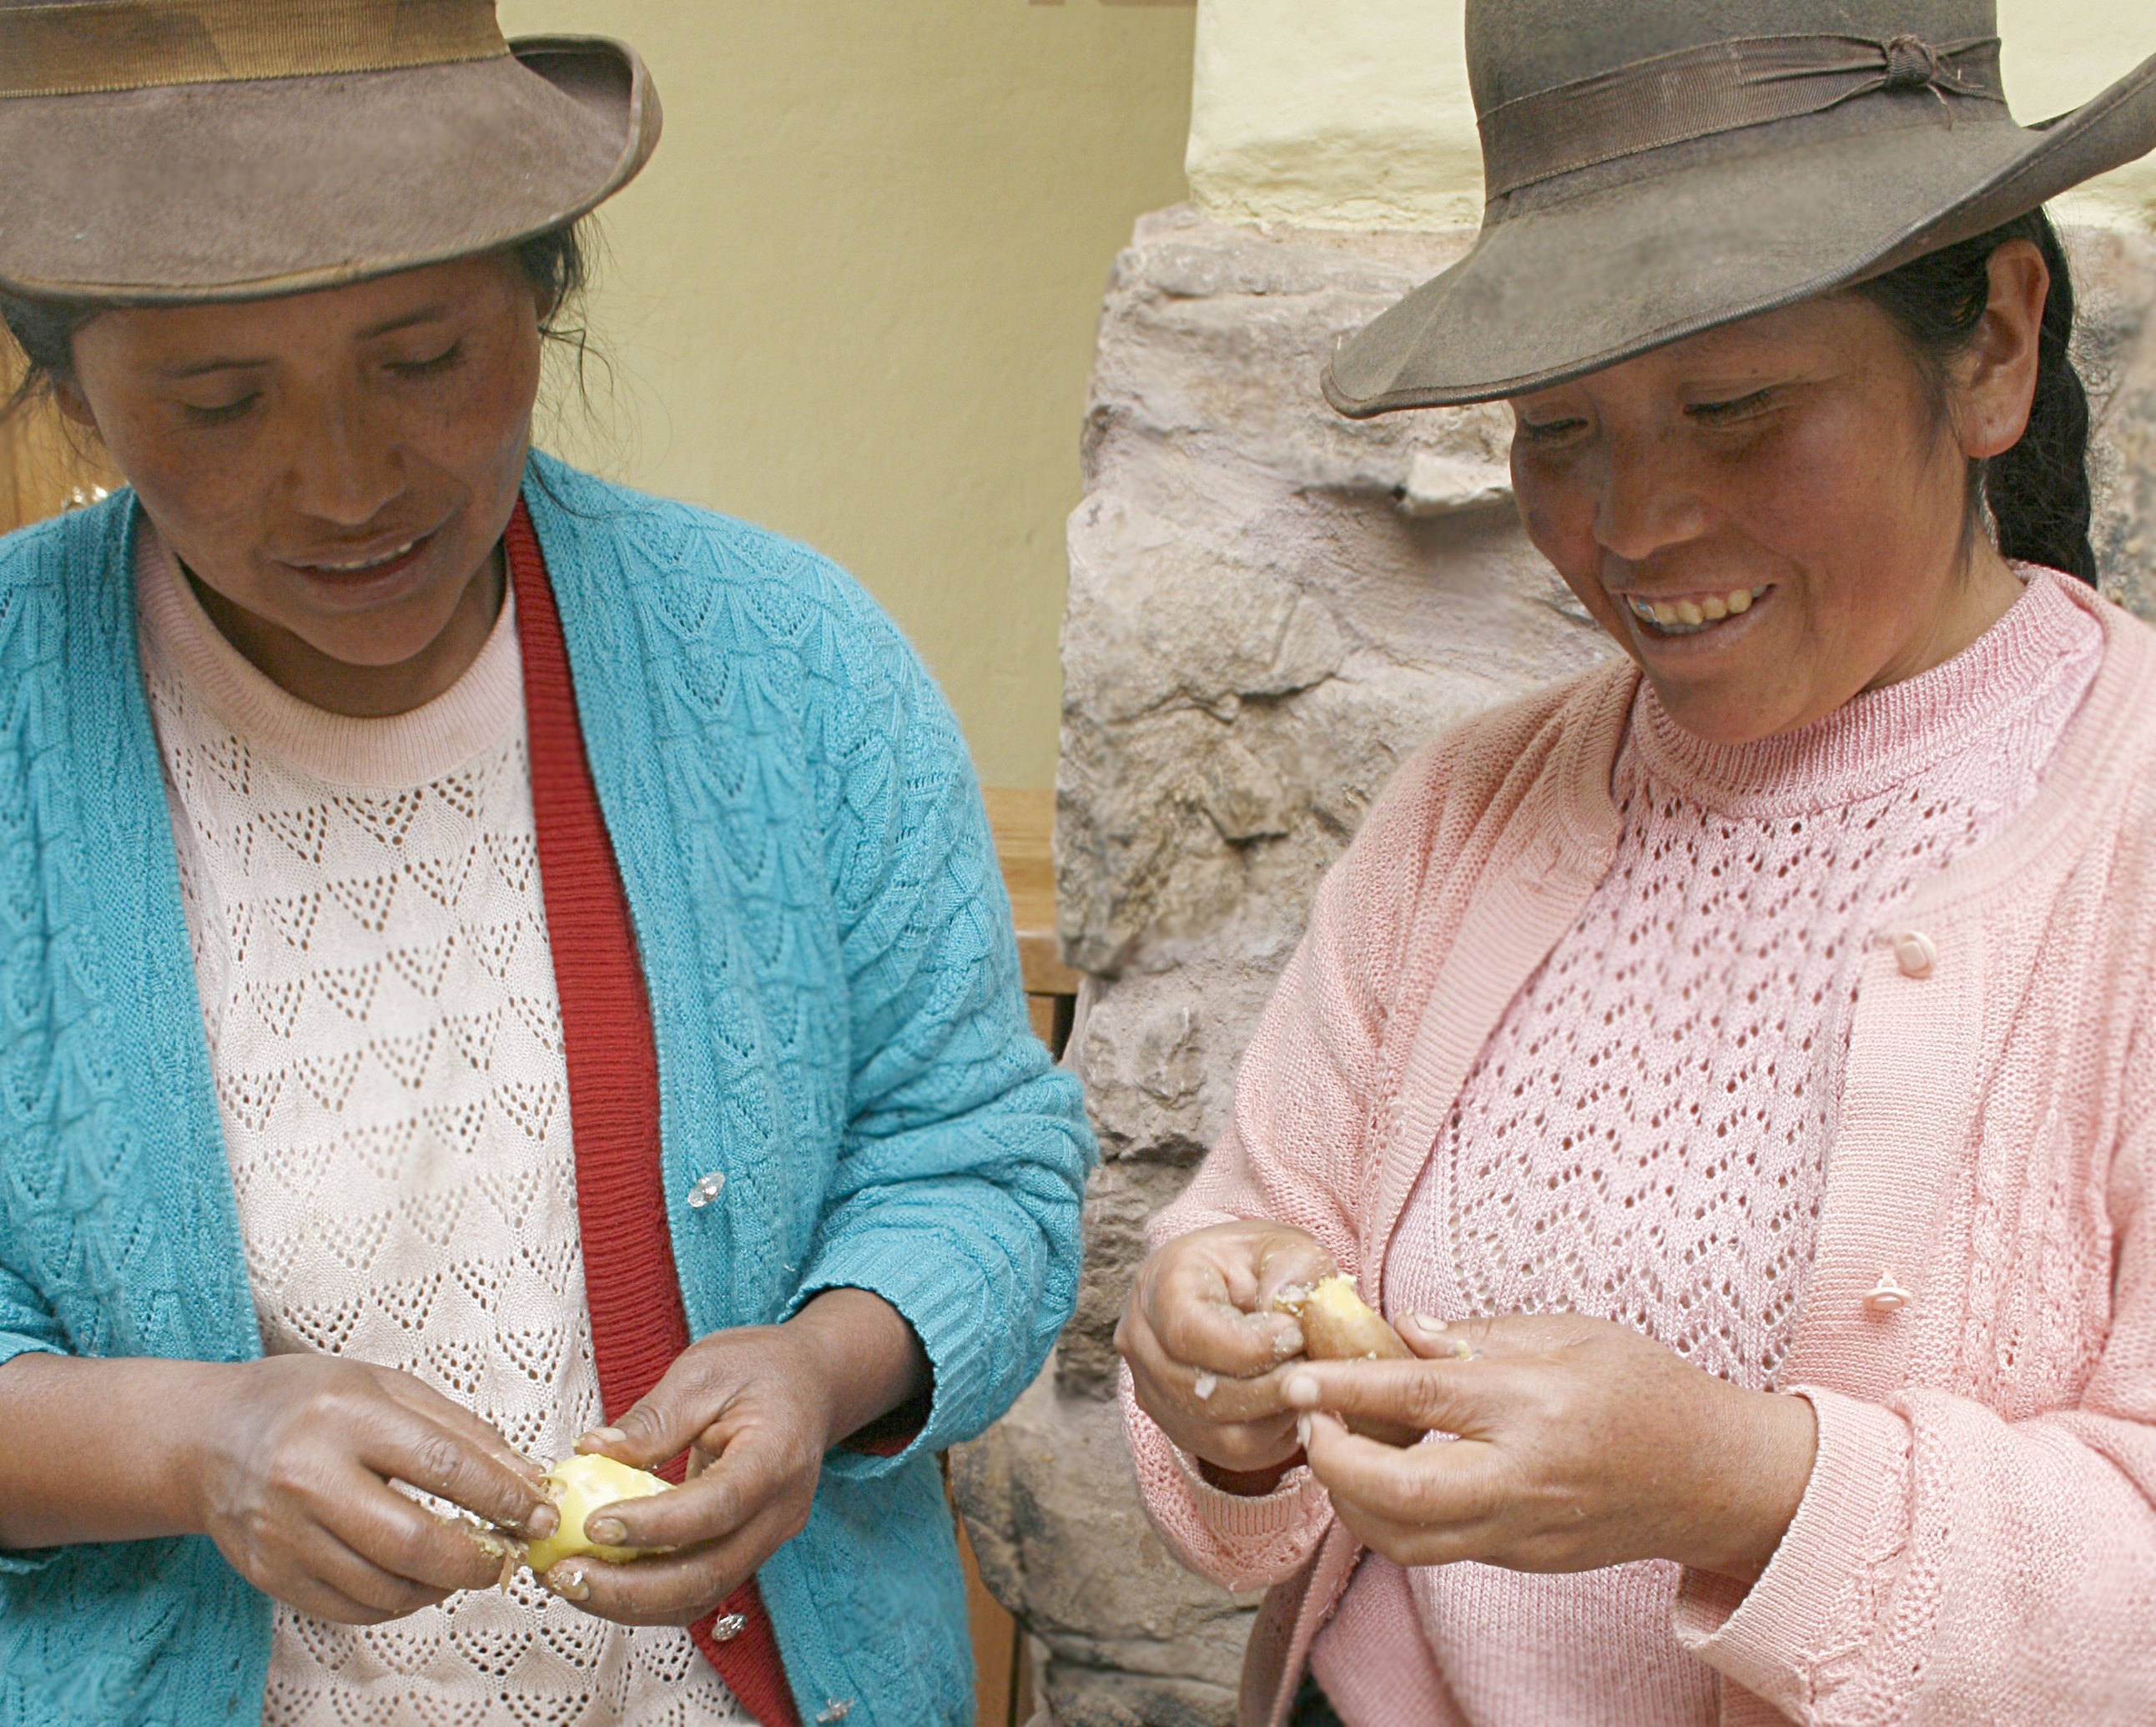 Peru's Potato Park protects the genetic diversity of local crops (Photos: Khanh Tran-Thanh/IIED)